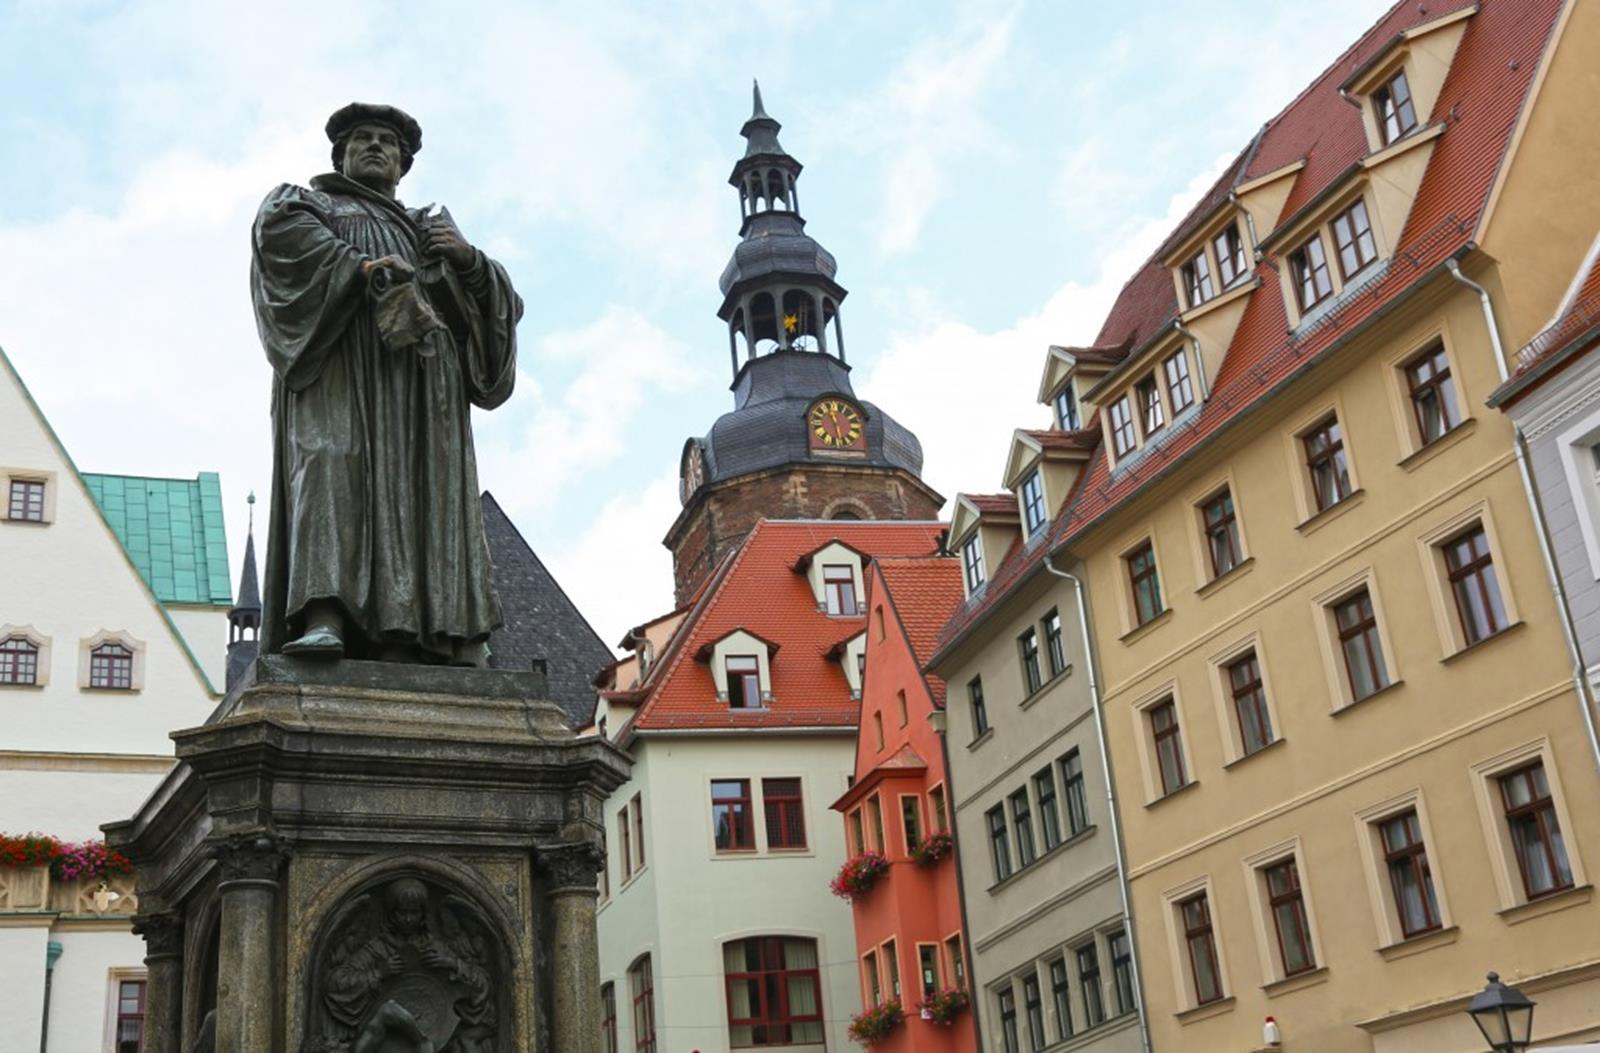 Luther memorial at the market place in Eisleben: Credit GNTB, Andrews, J.D.